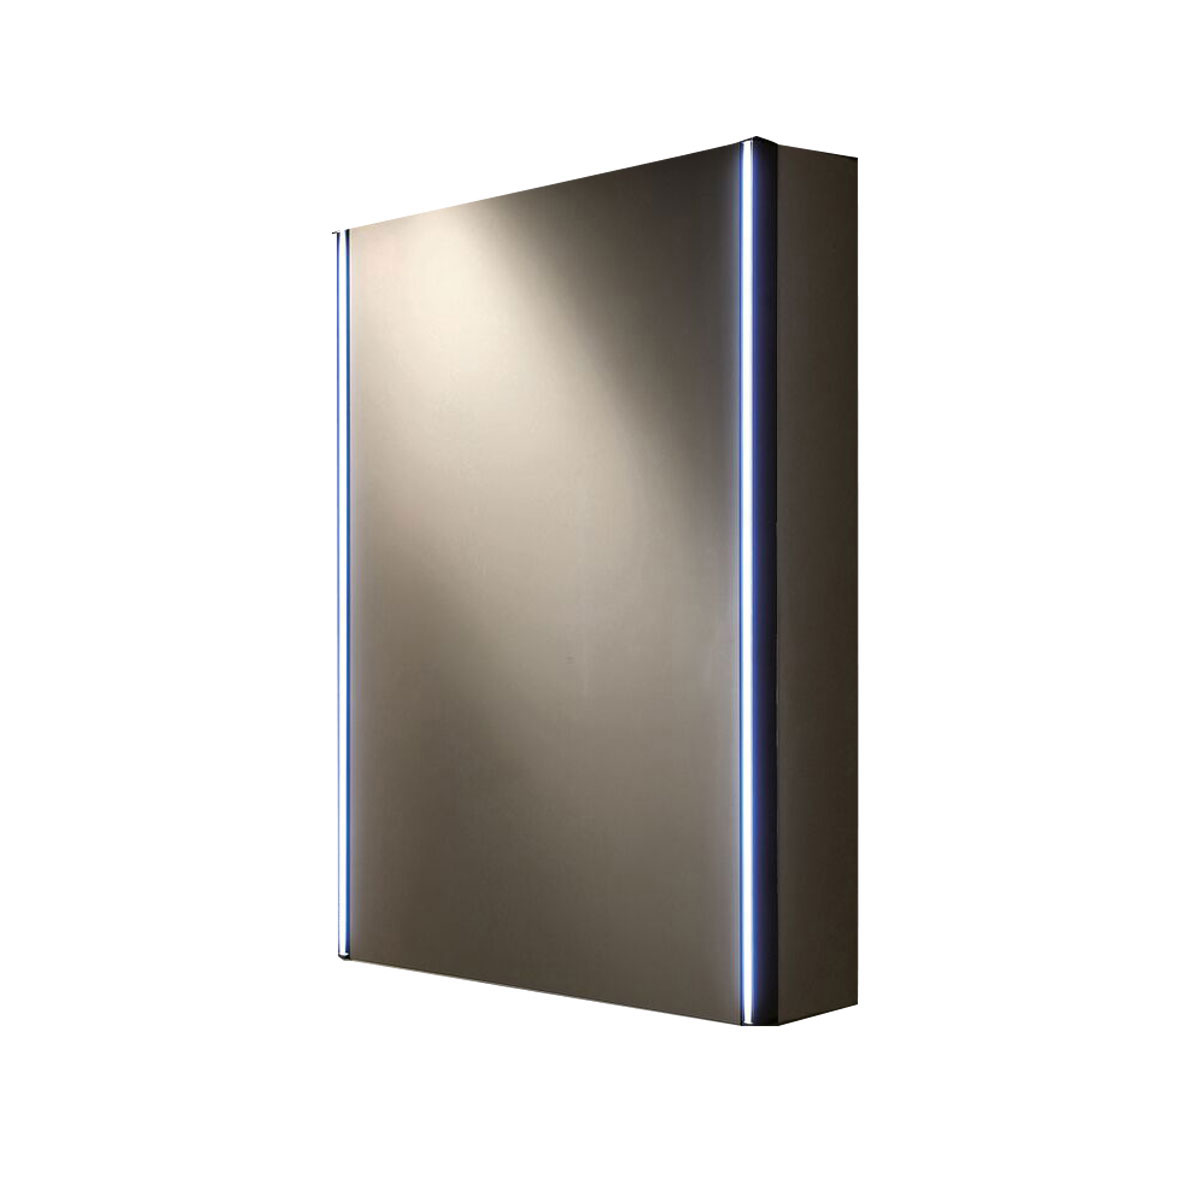 Ruby Remer Illuminated Mirrored Bathroom Cabinet | Luxe Mirrors